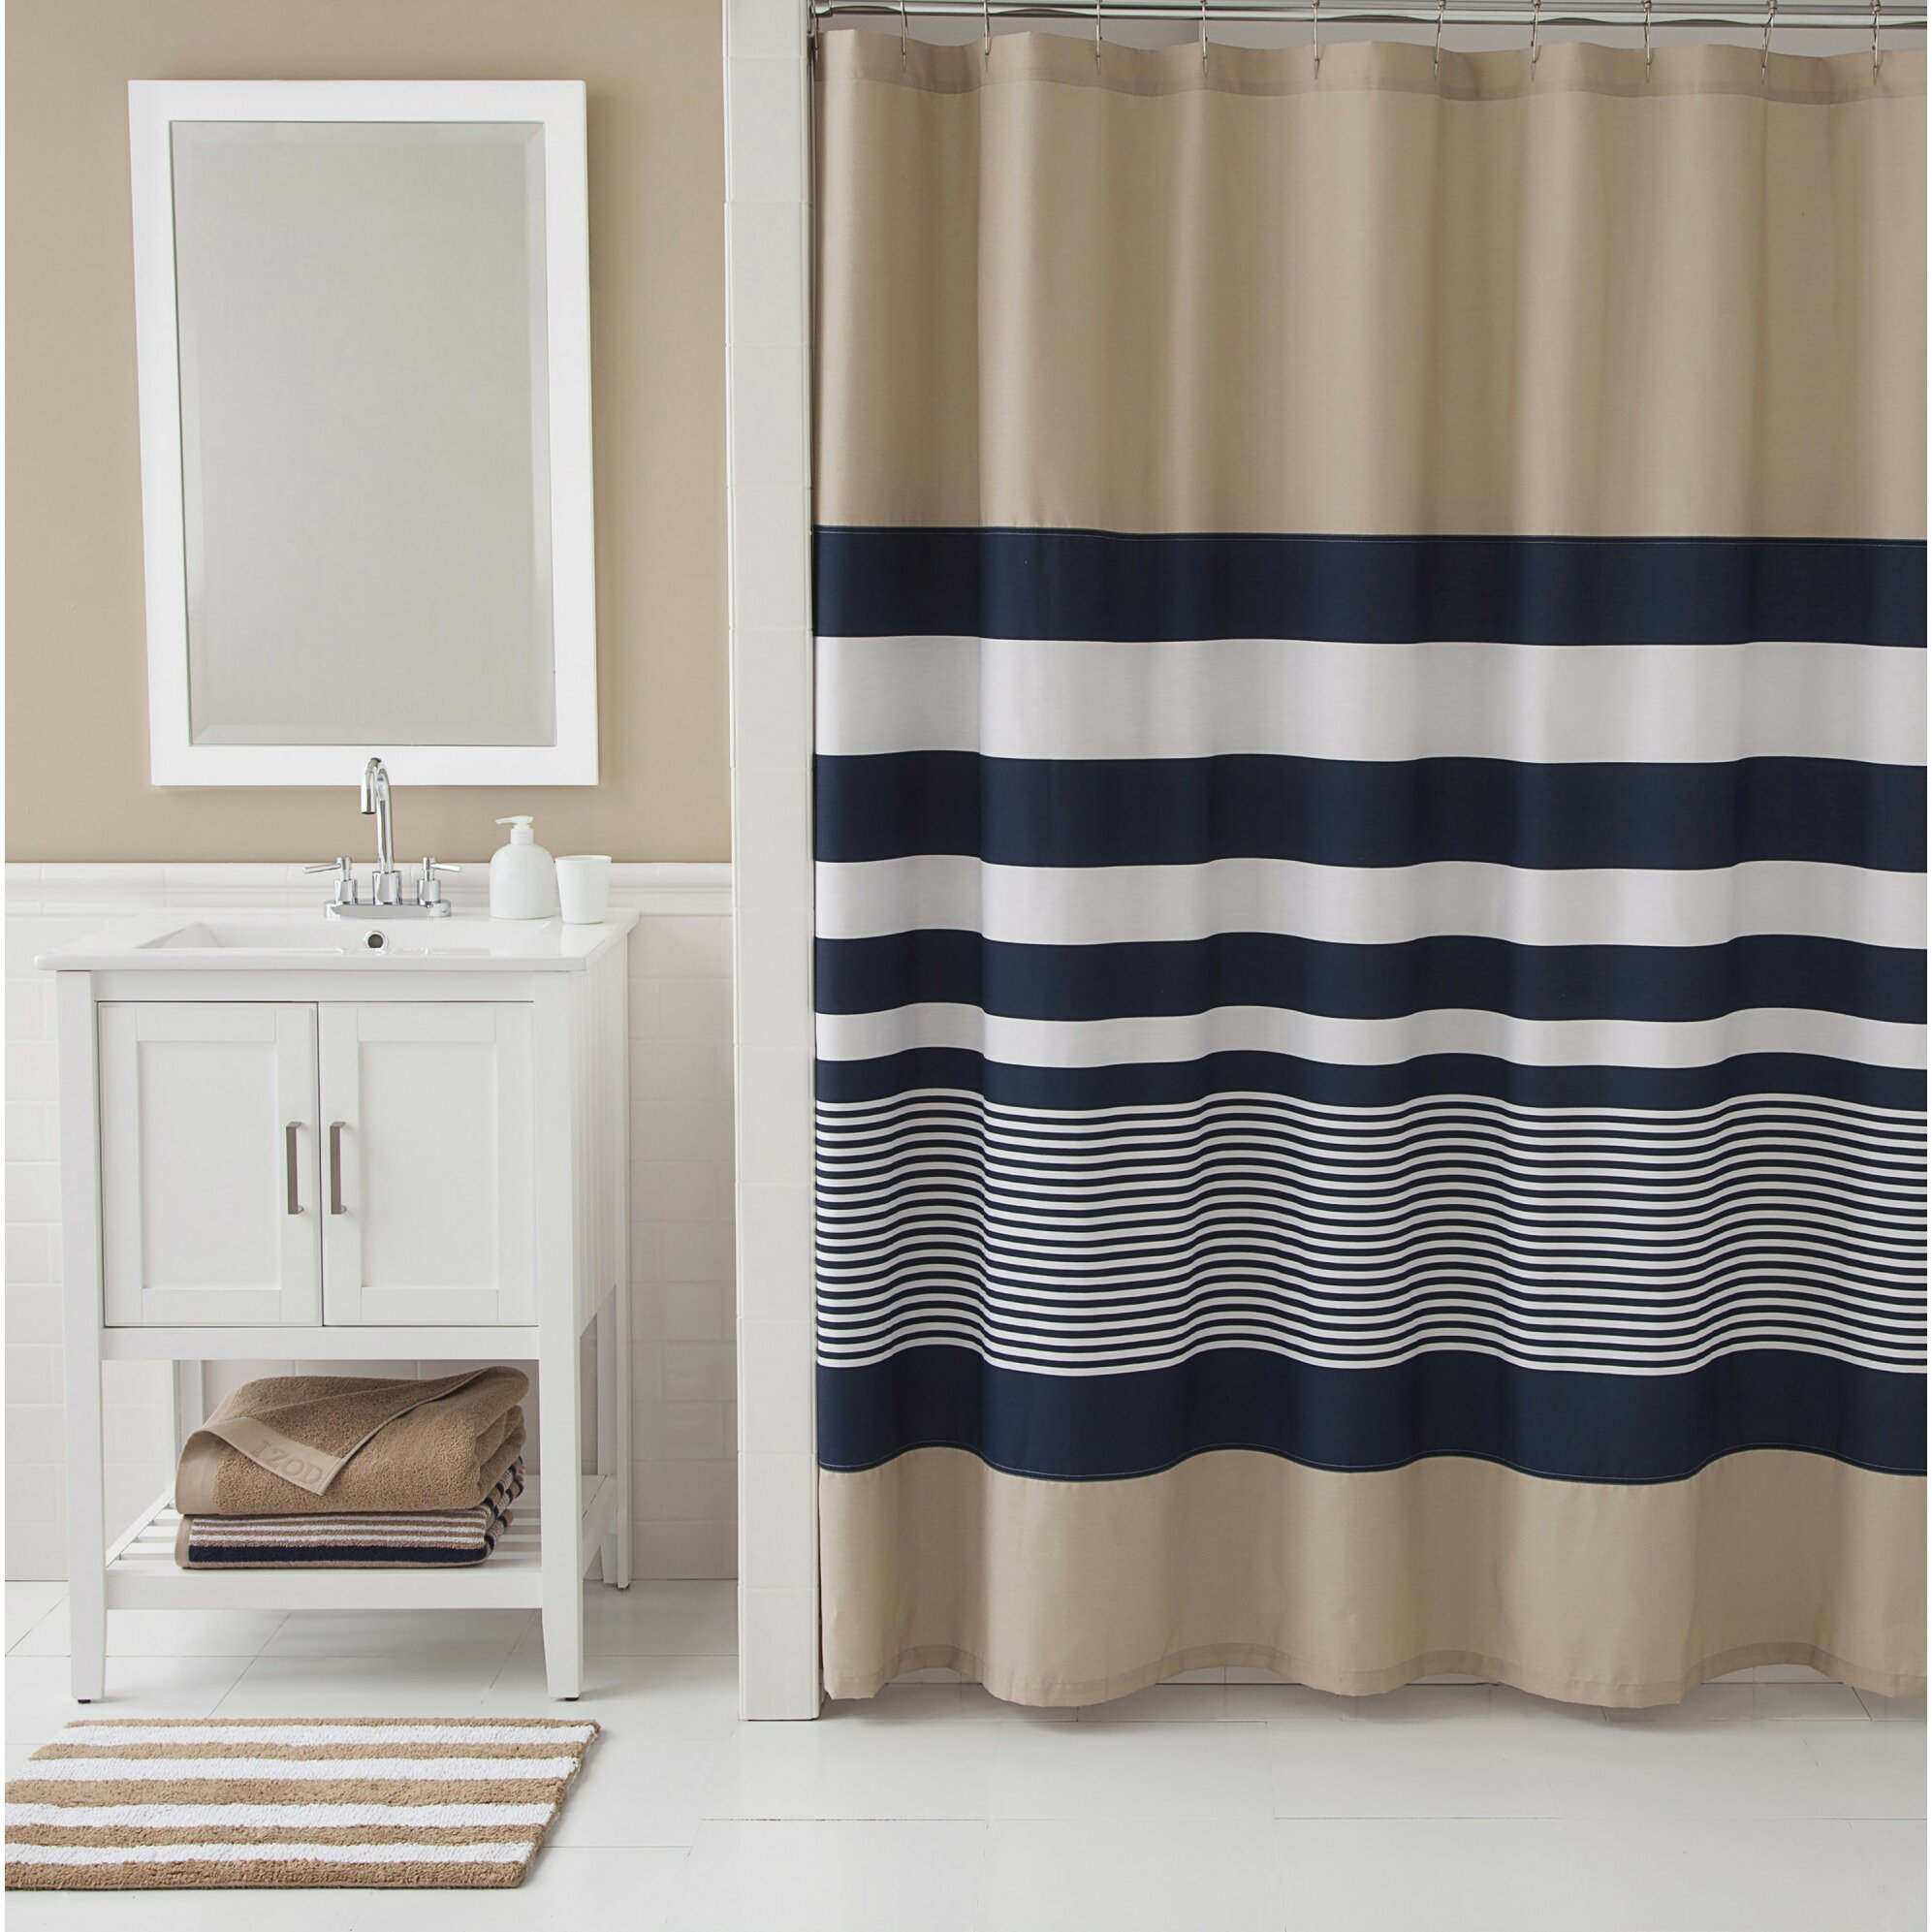 curtains target nautica extra brushed shower nickel long free rod myfamilyliving shipping com pvc winsome curtain liner fabric amazing blackout